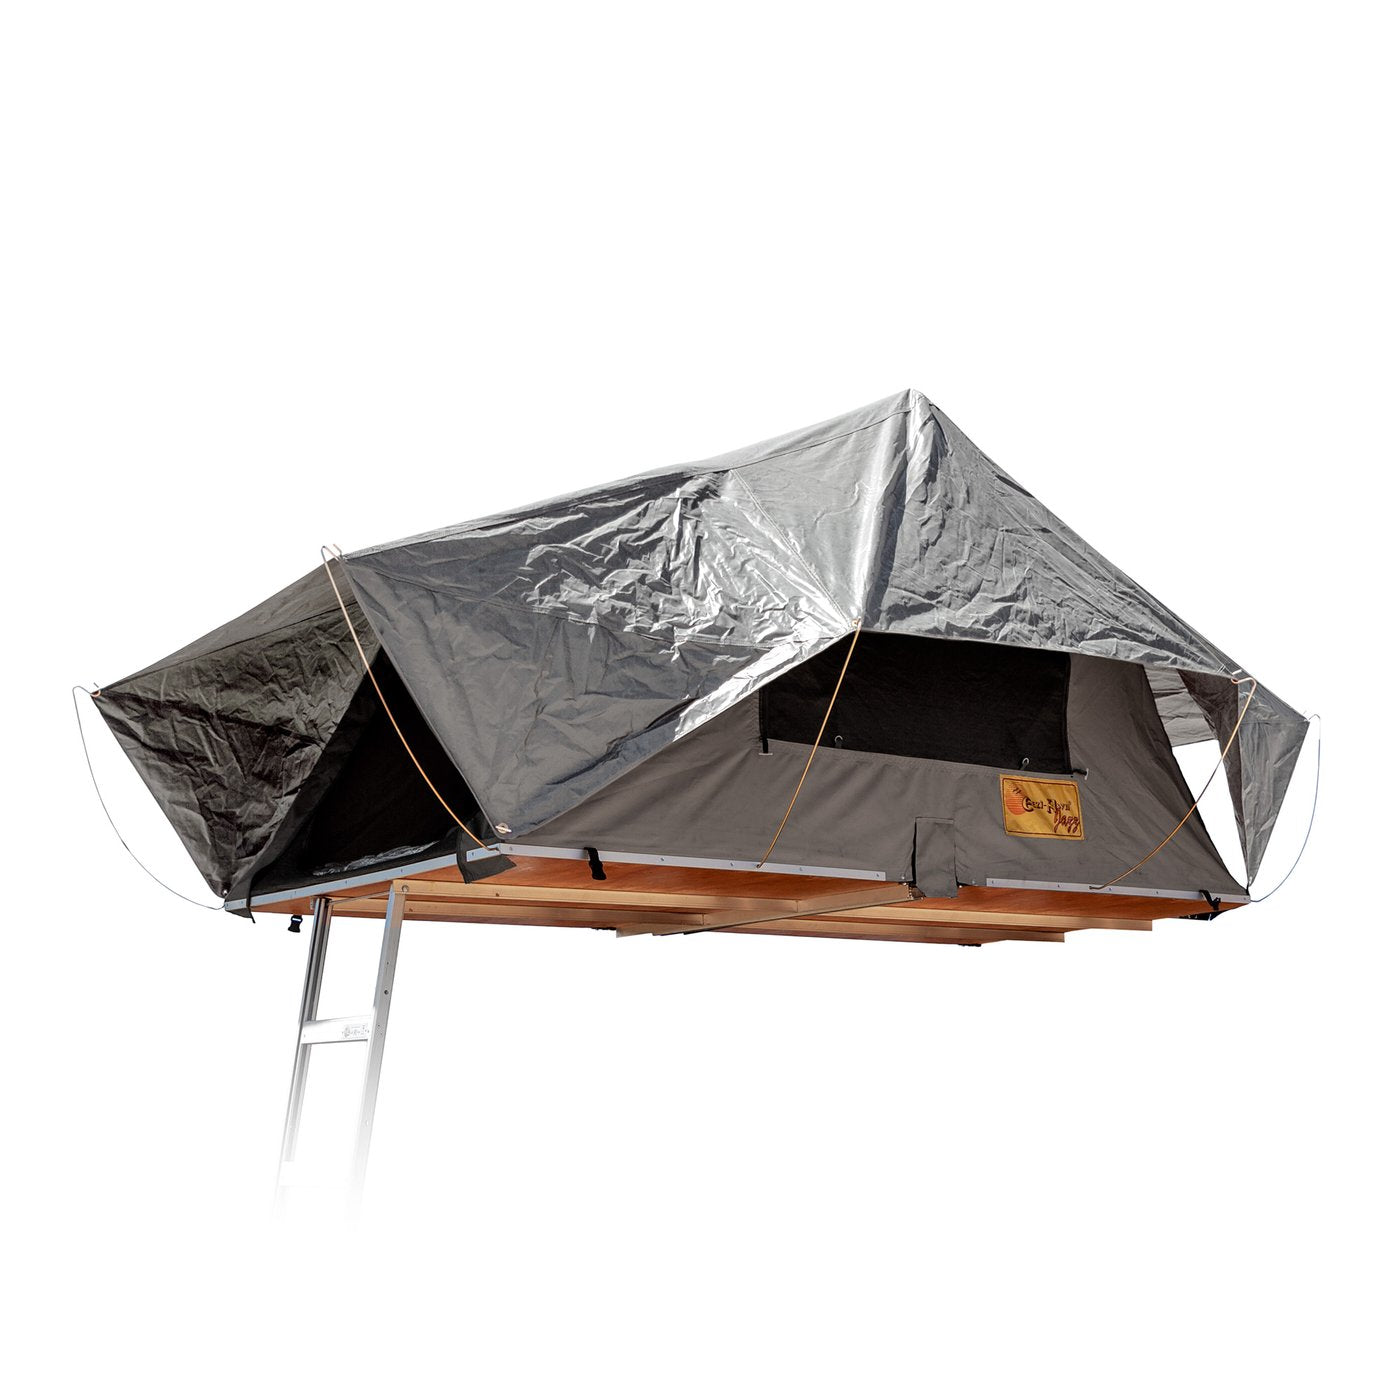 Eezi-Awn Jazz Roof Top Tent - PRE-ORDER FOR ESTIMATED END OF DECEMBER DELIVERY